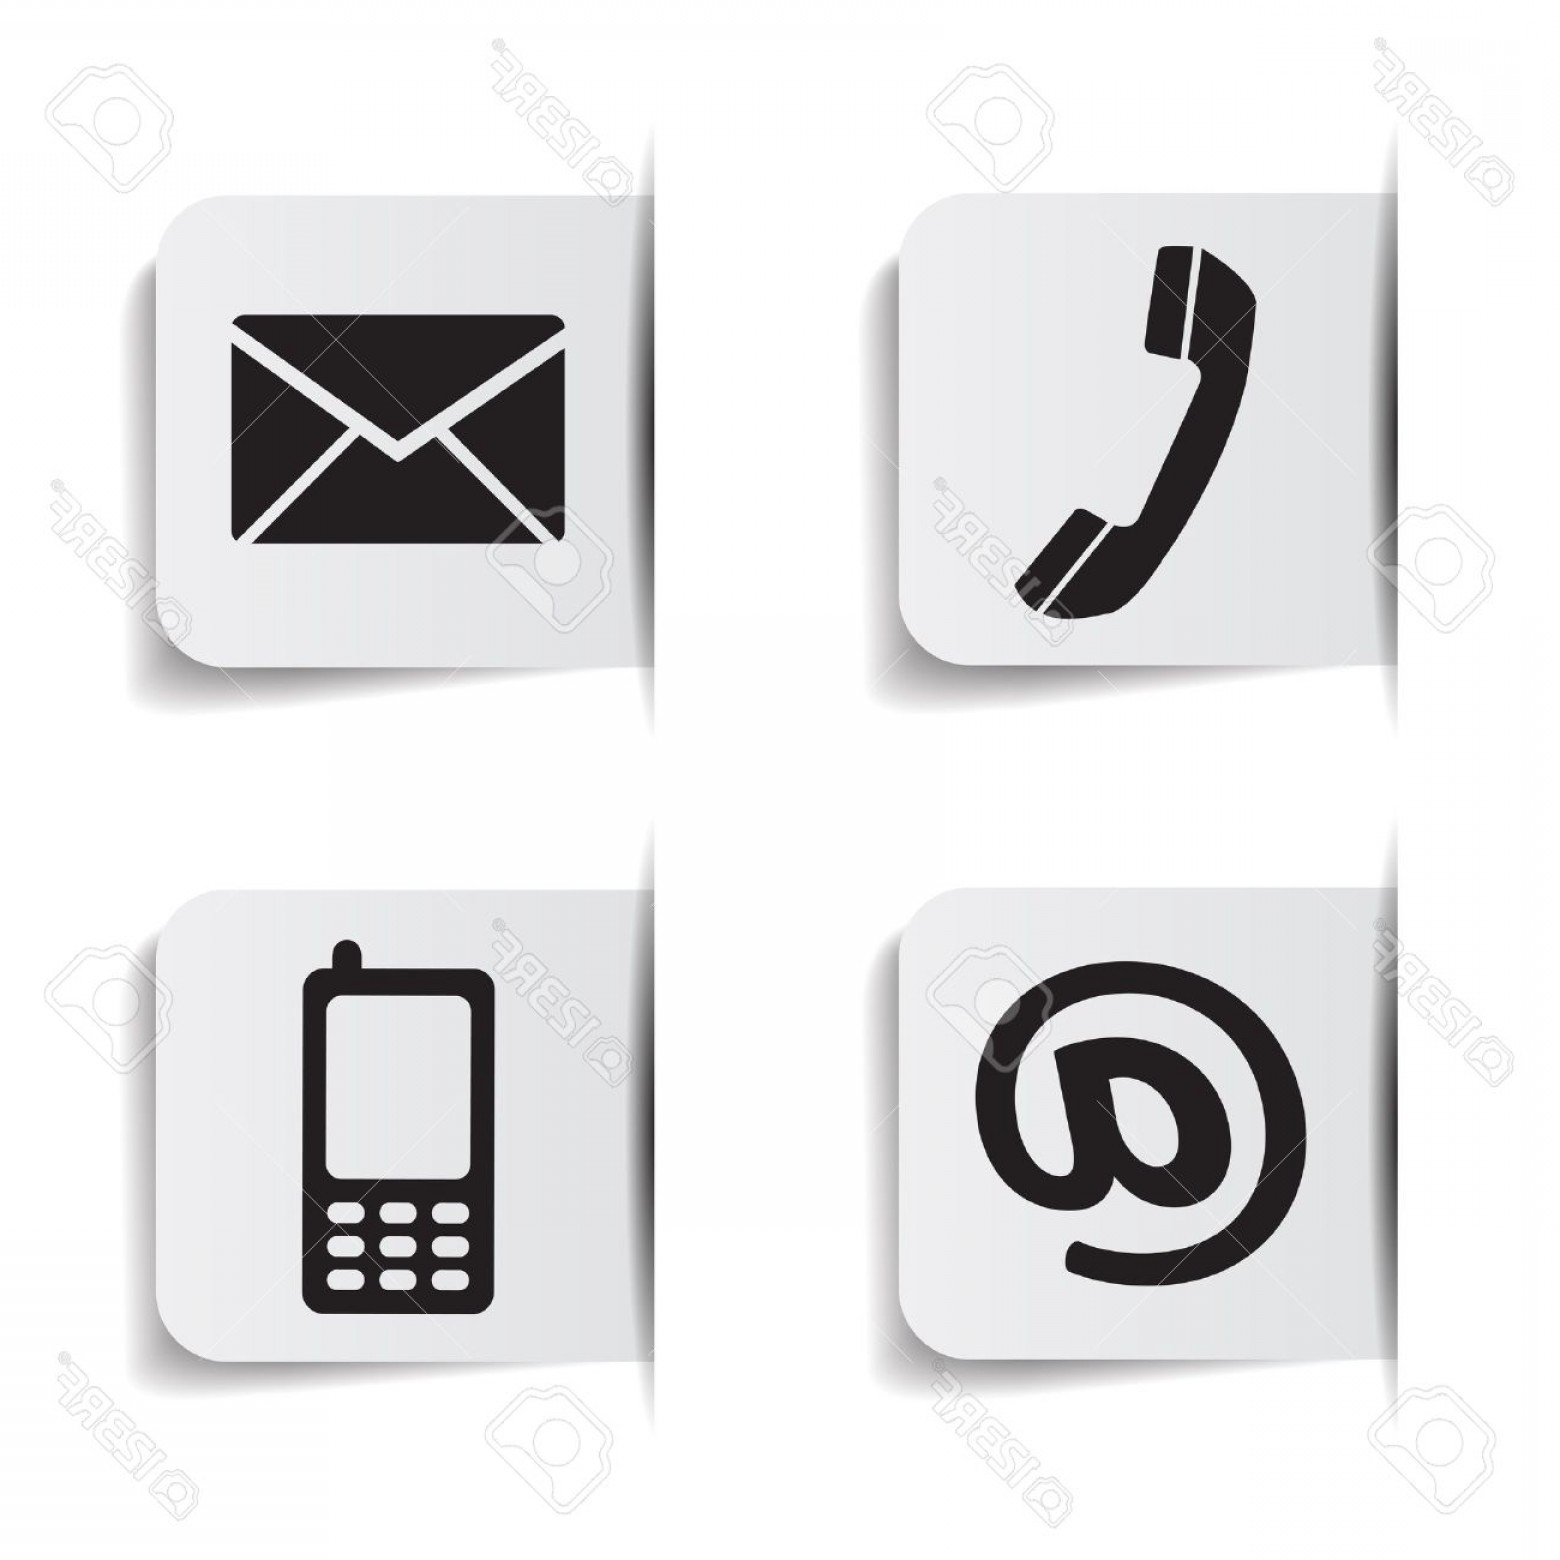 1560x1560 Photostock Vector Web Contact Us Black Icons With Telephone Email